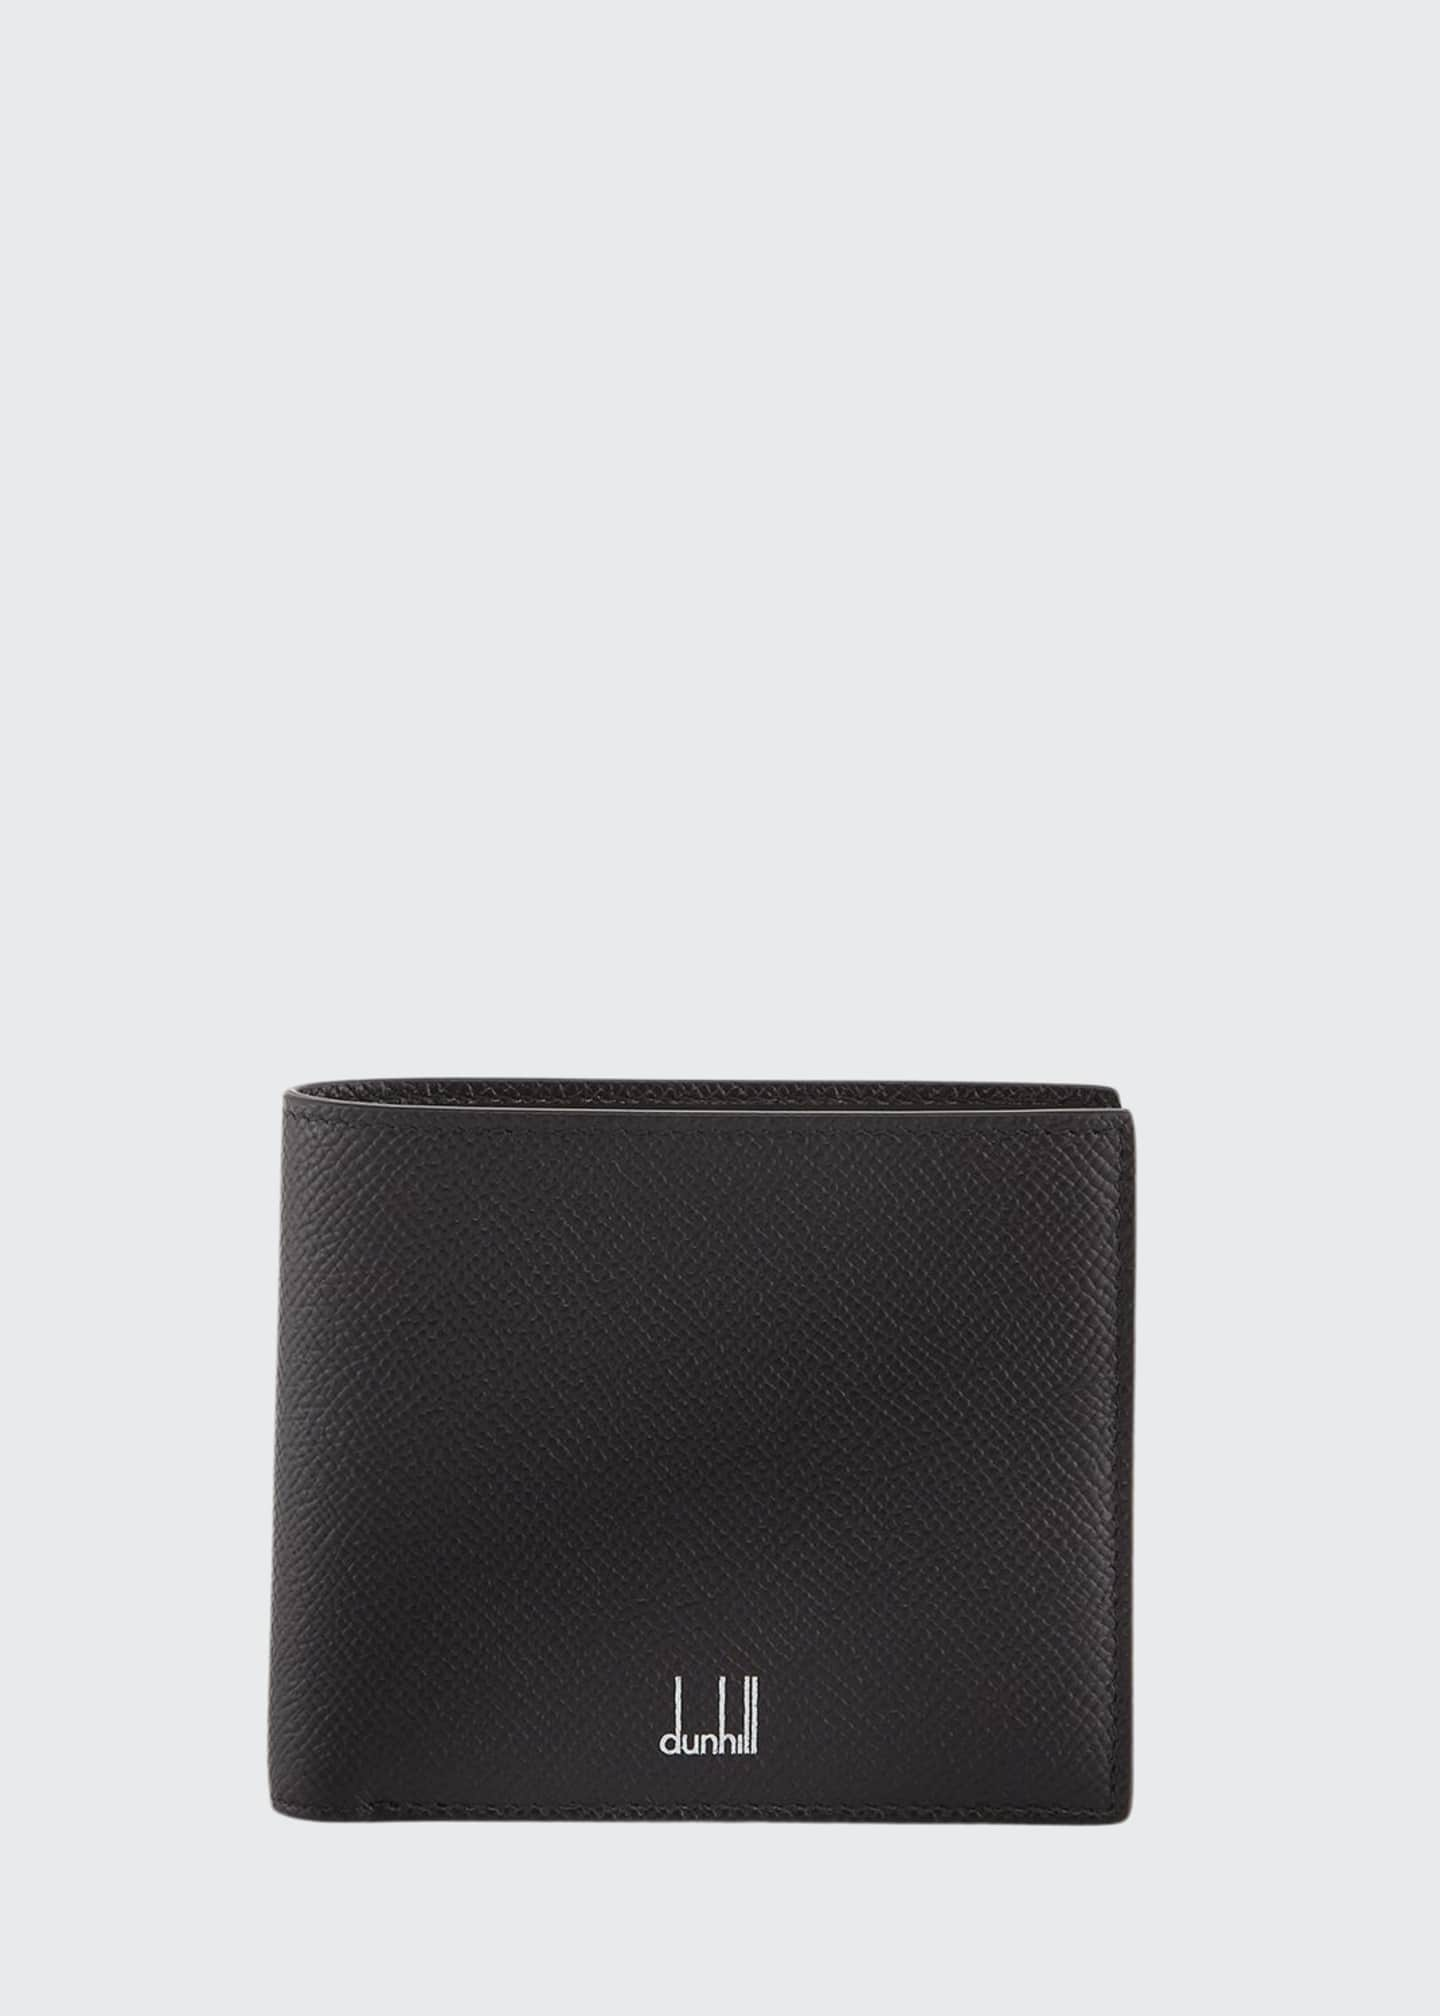 dunhill Men's Cadogan Leather 8-Card Bi-Fold Wallet